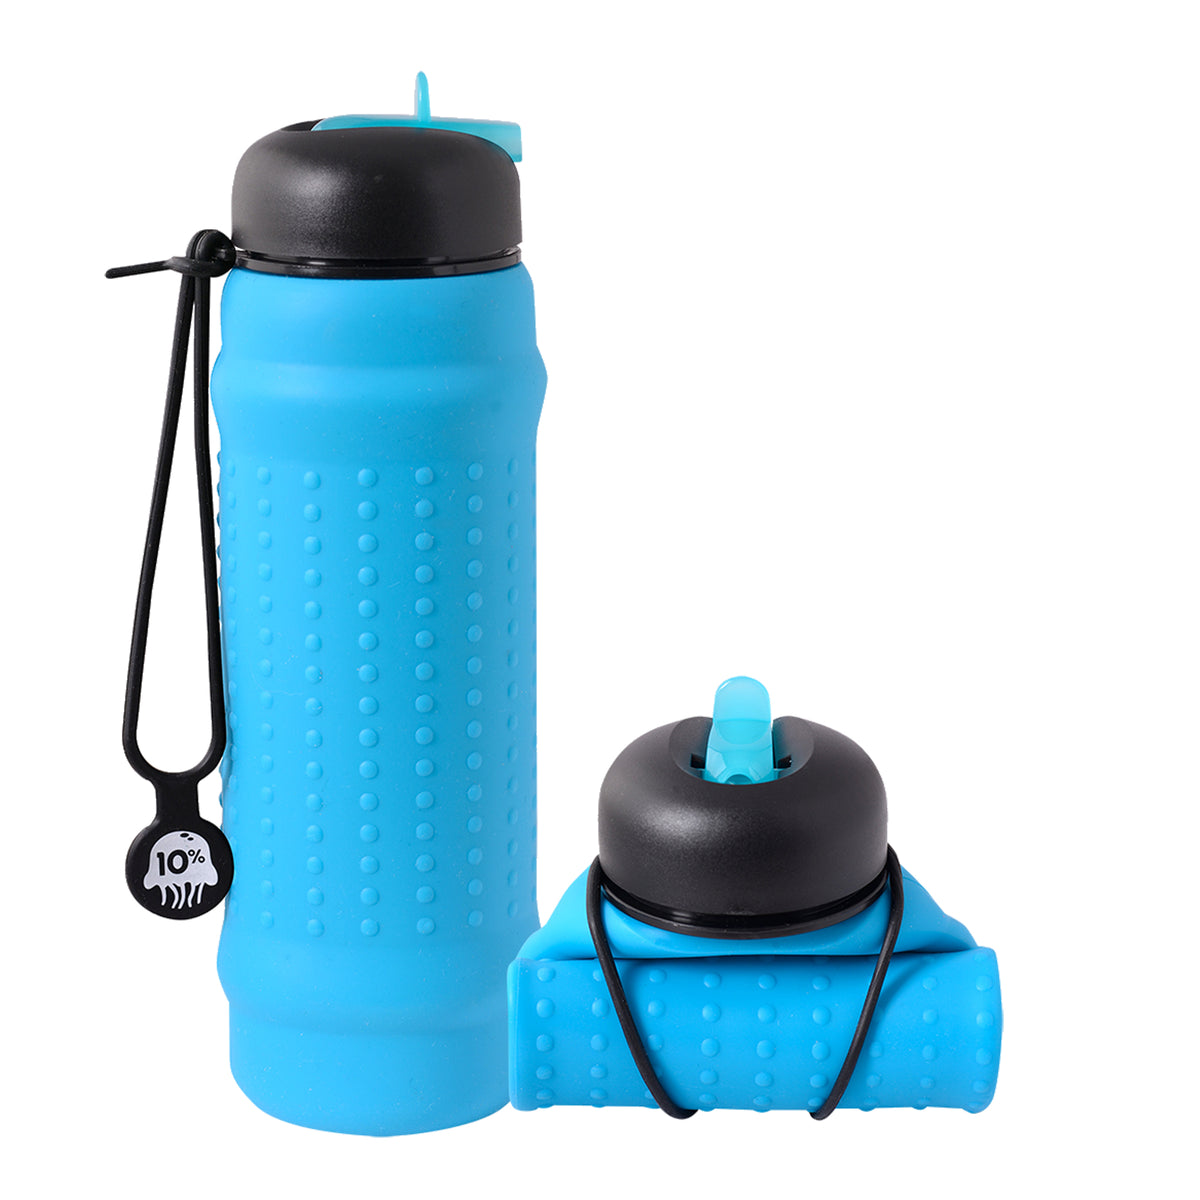 Rolla Bottle Aqua, Black & Blue Lid + Black Strap